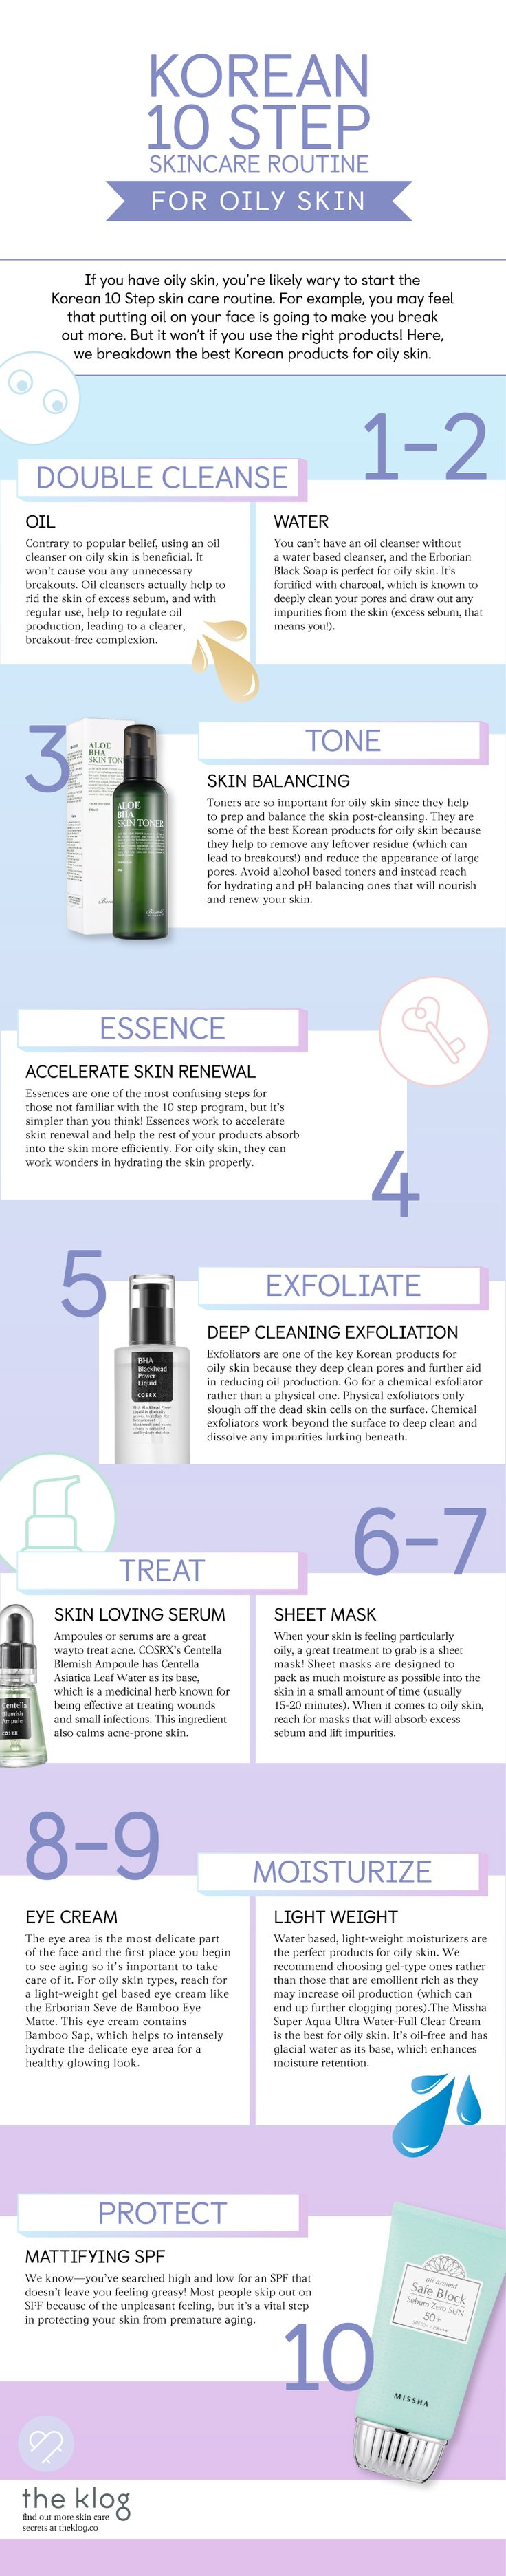 The Korean 10 Step Routine for Oily Skin